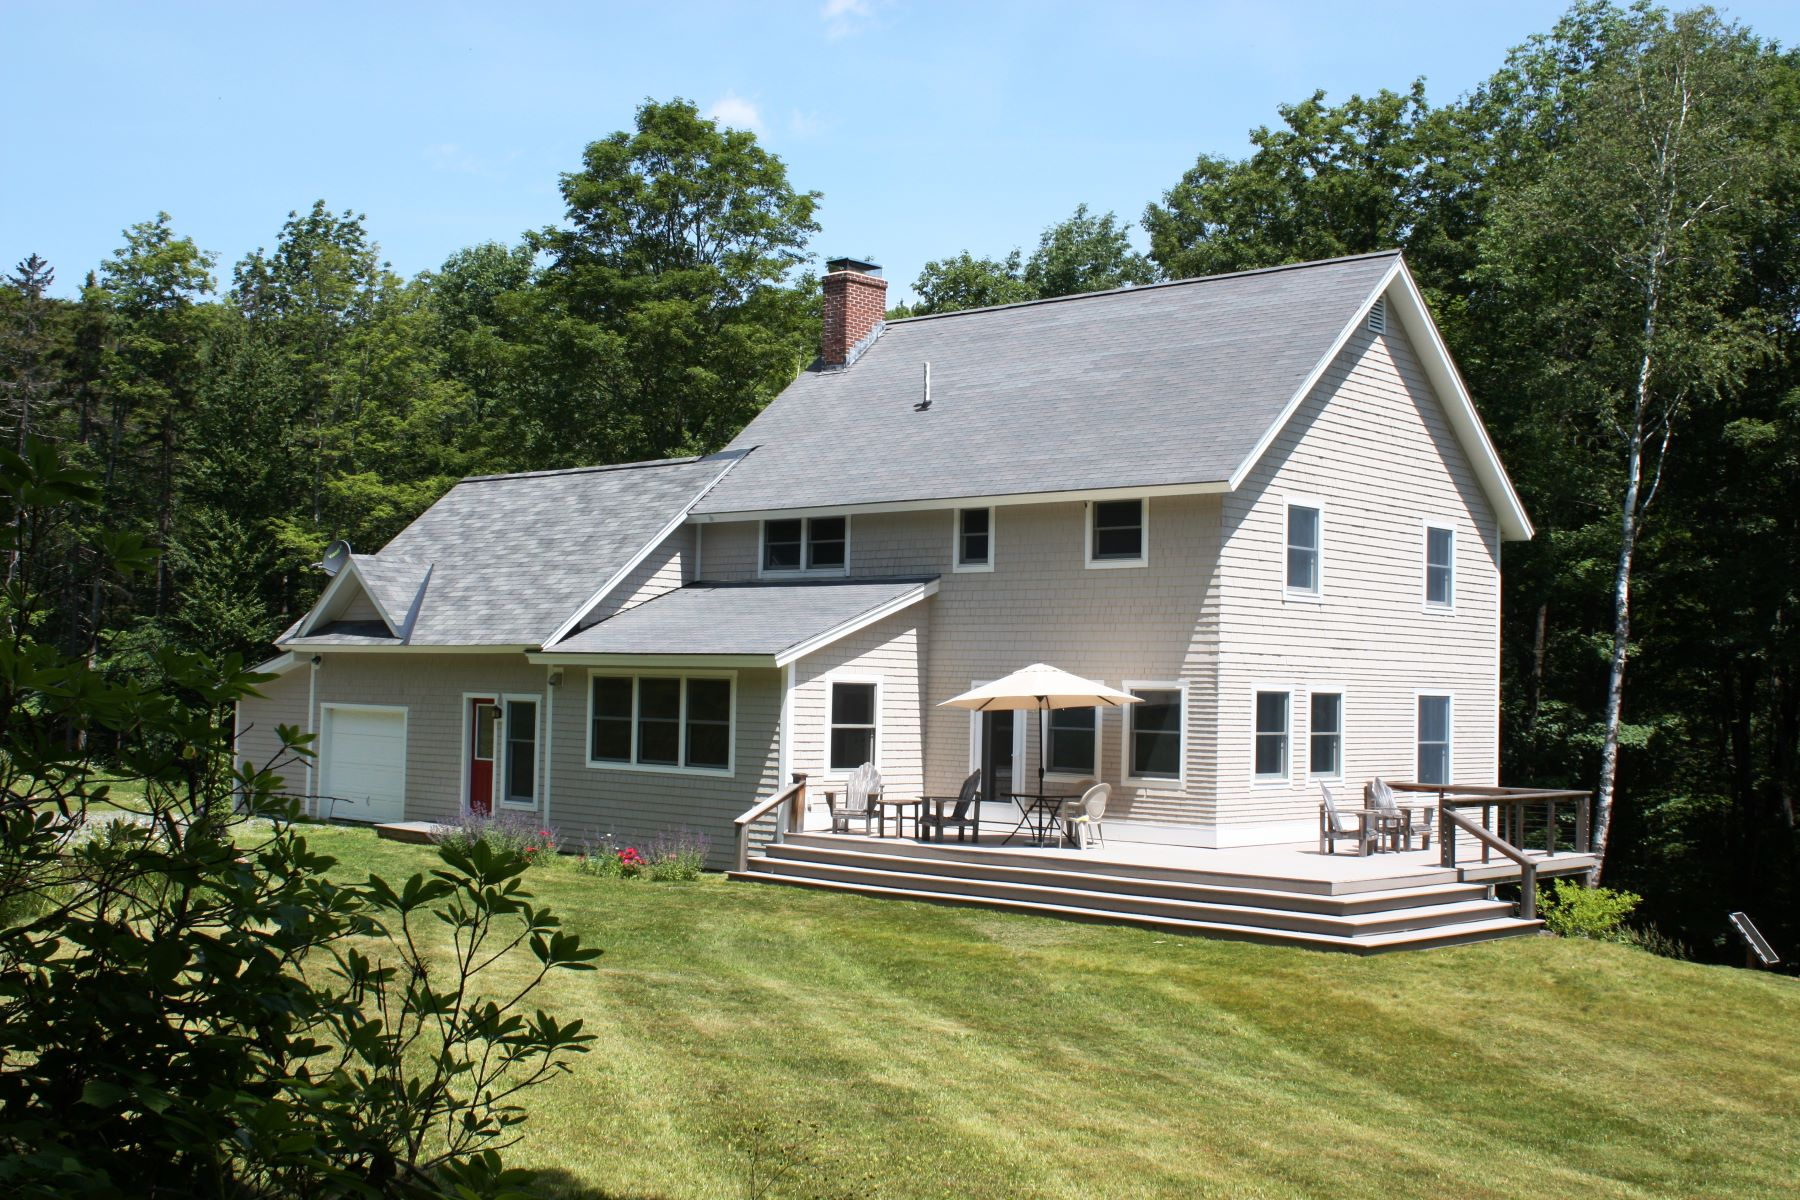 Single Family Homes for Sale at 700 John Darling Road Woodstock, Vermont 05071 United States